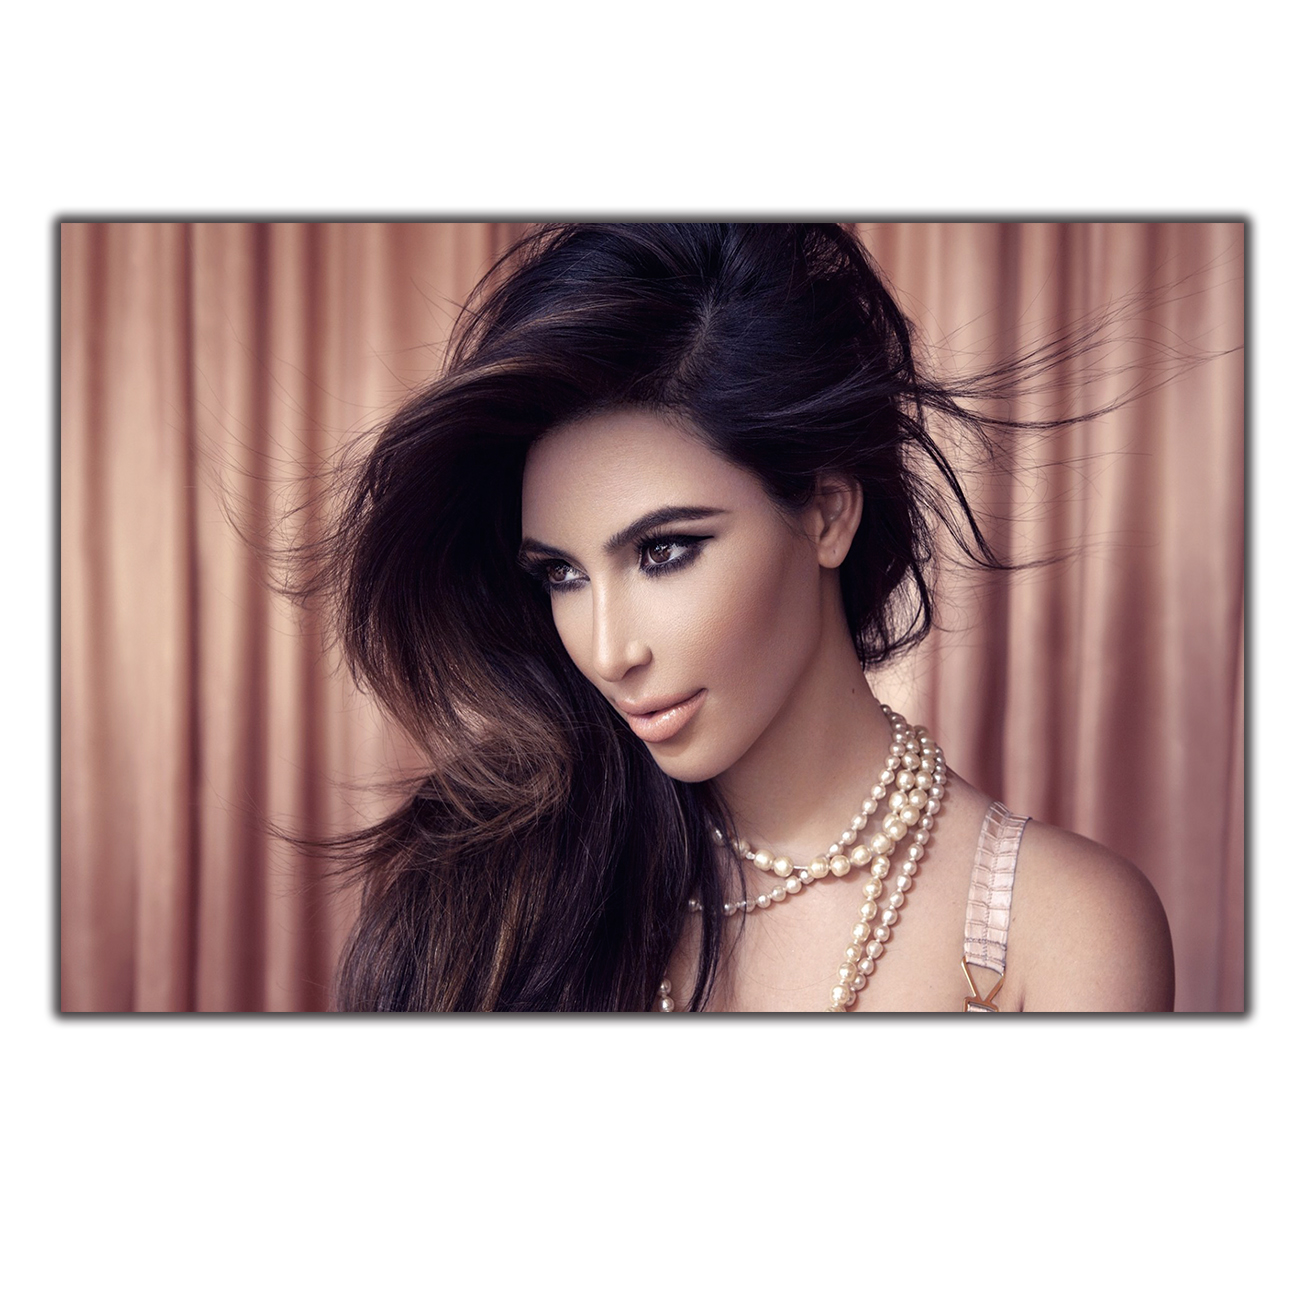 Art Poster Print hot Home Wall decor8x12 12x18 24x36decor canvas <font><b>Kim</b></font> Kardashian Movie Actor Star image